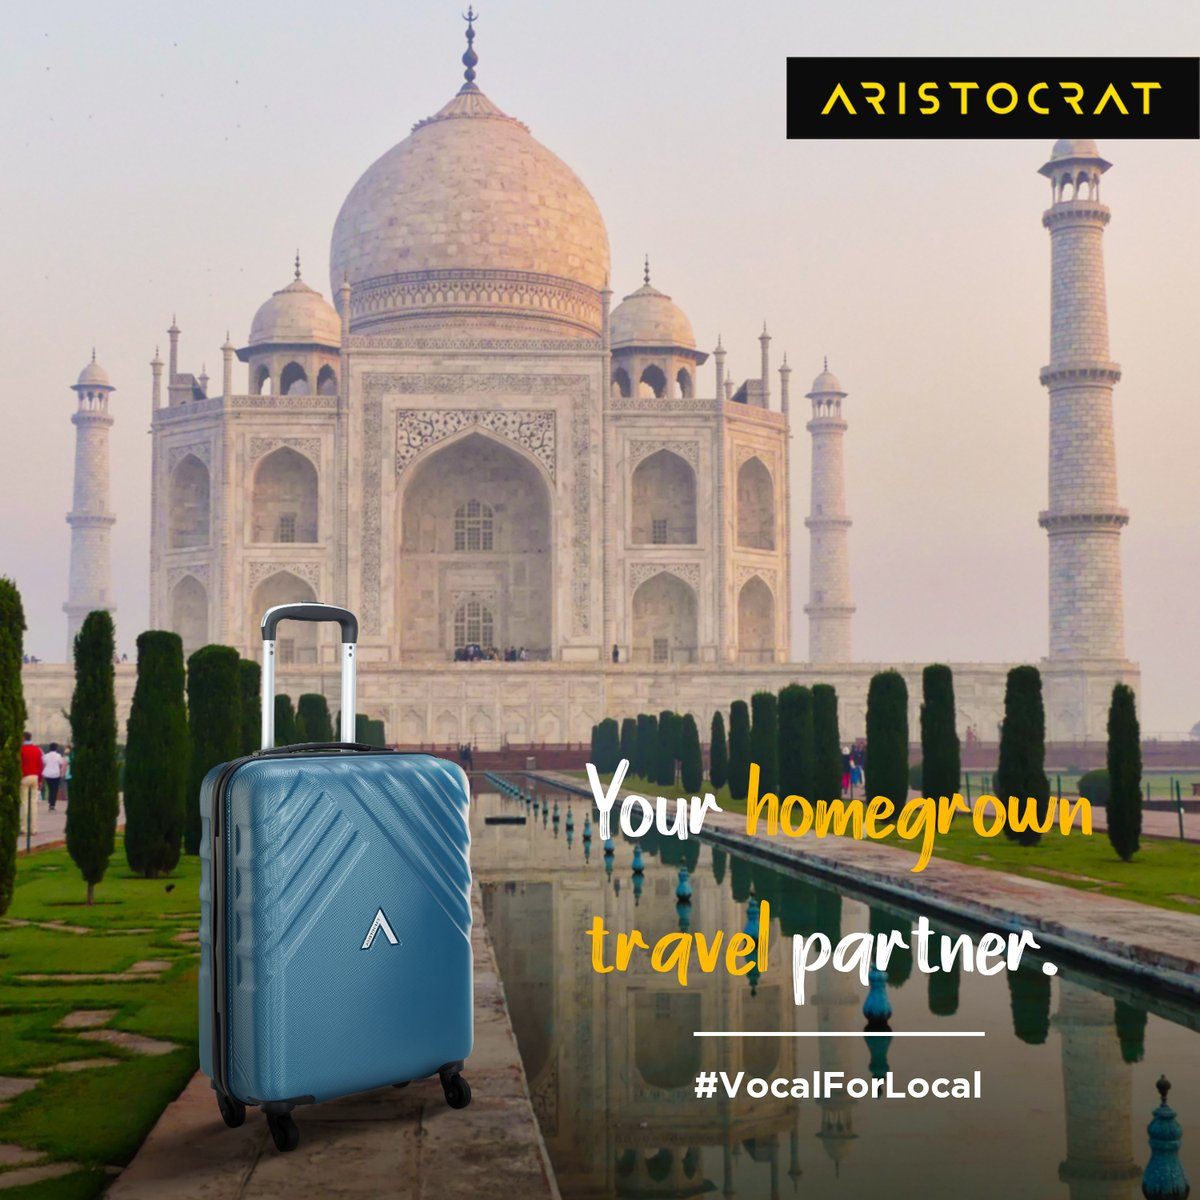 Let's go #VocalForLocal with the premium collection of Aristocrat polycarbonate bags, your #AtmaNirbhar travel partner. #UnpackYourDreams